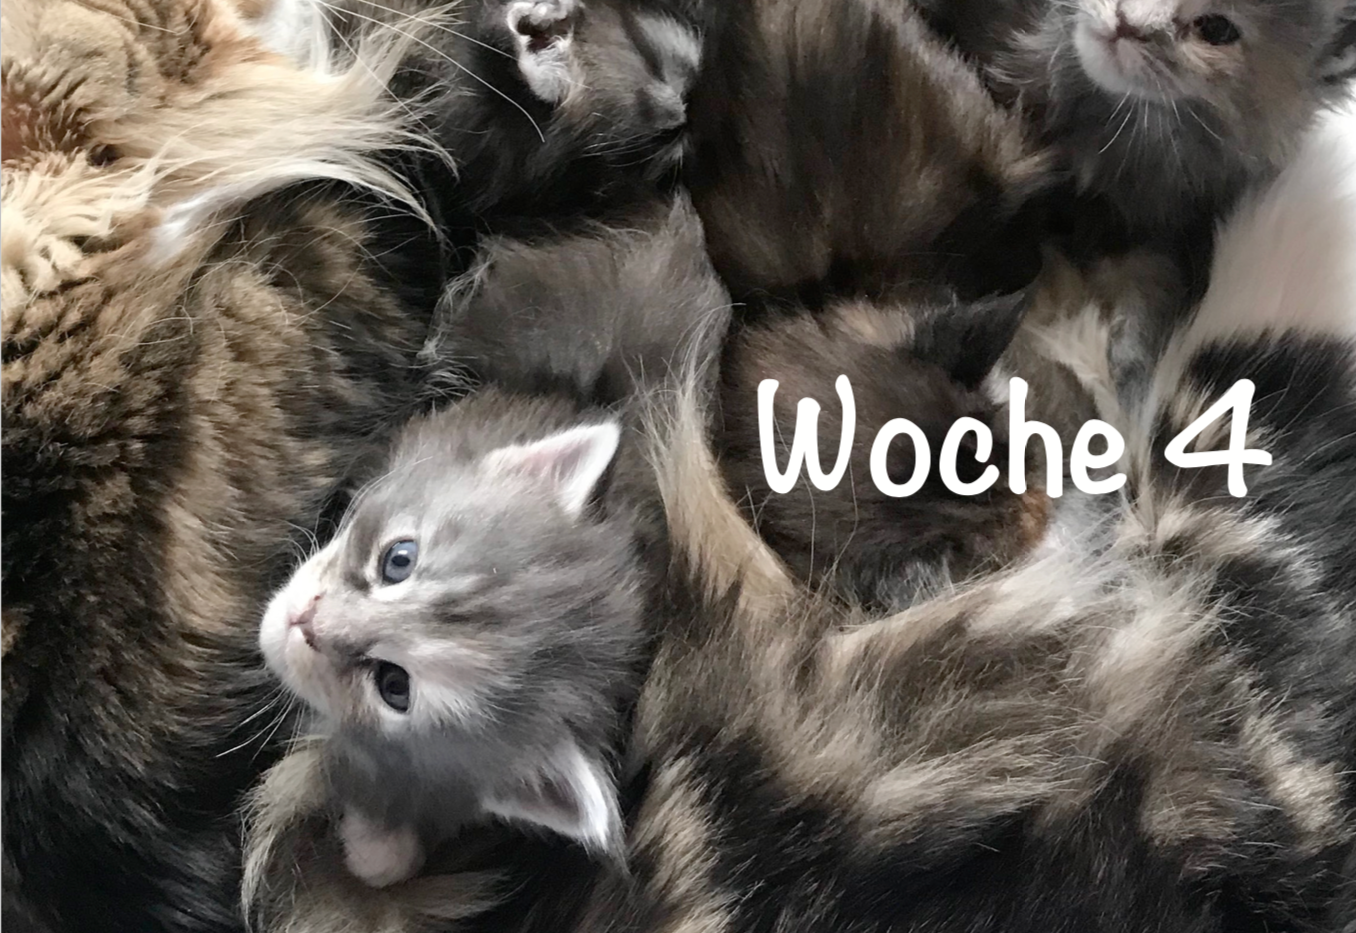 04-Woche4.png